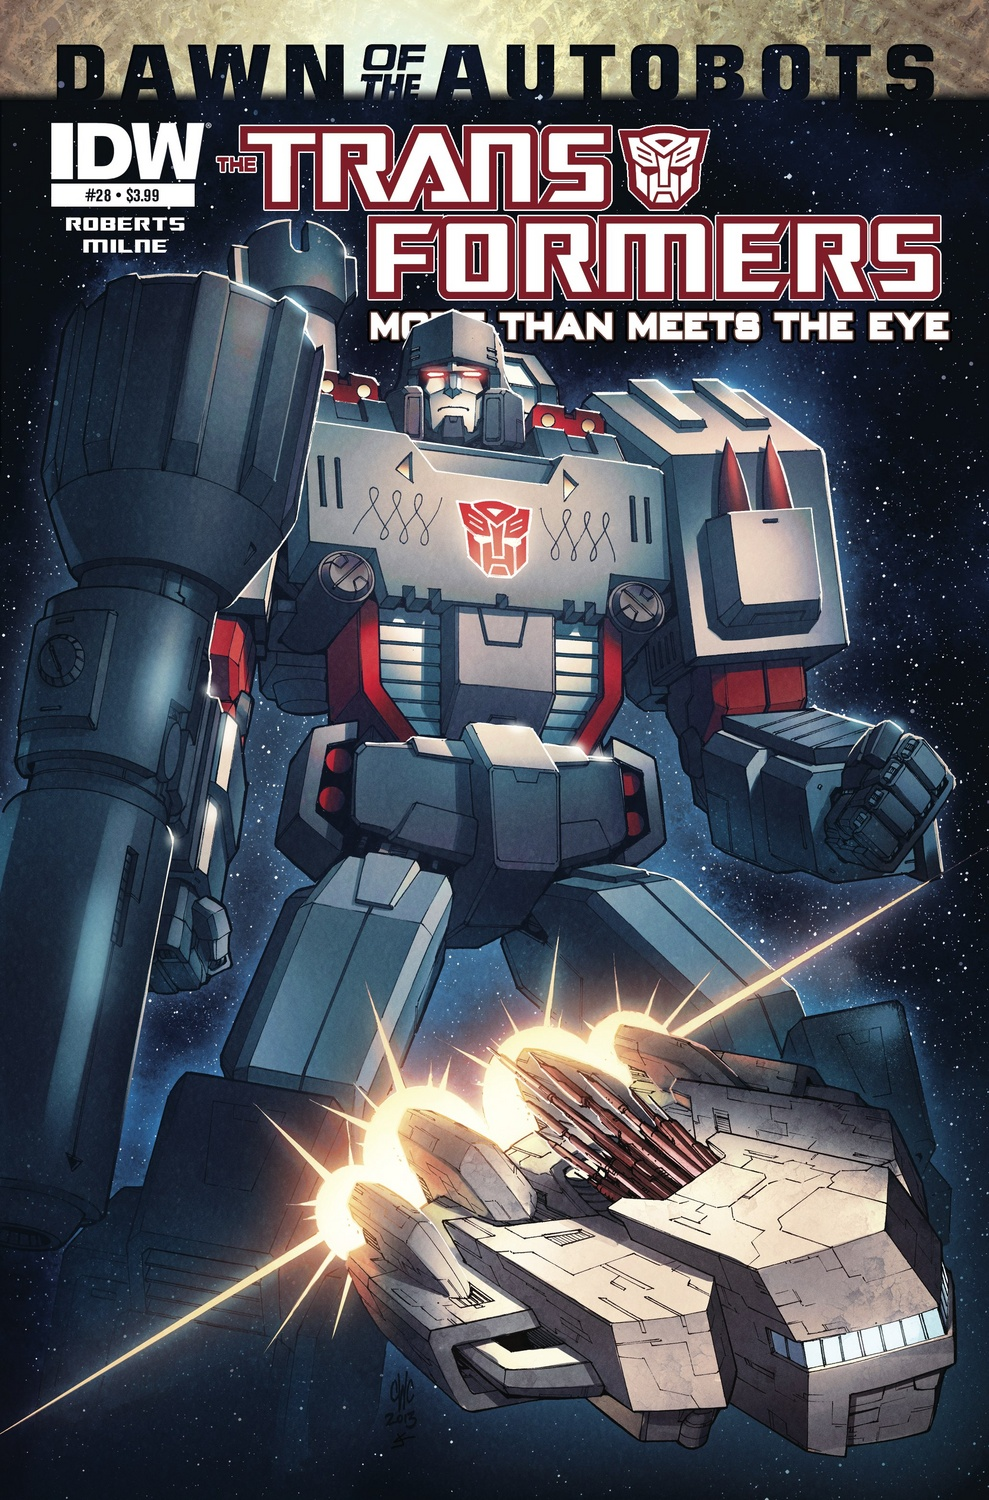 transformers-comics-more-than-meets-the-eye-issue-28-cover-a_1392299823